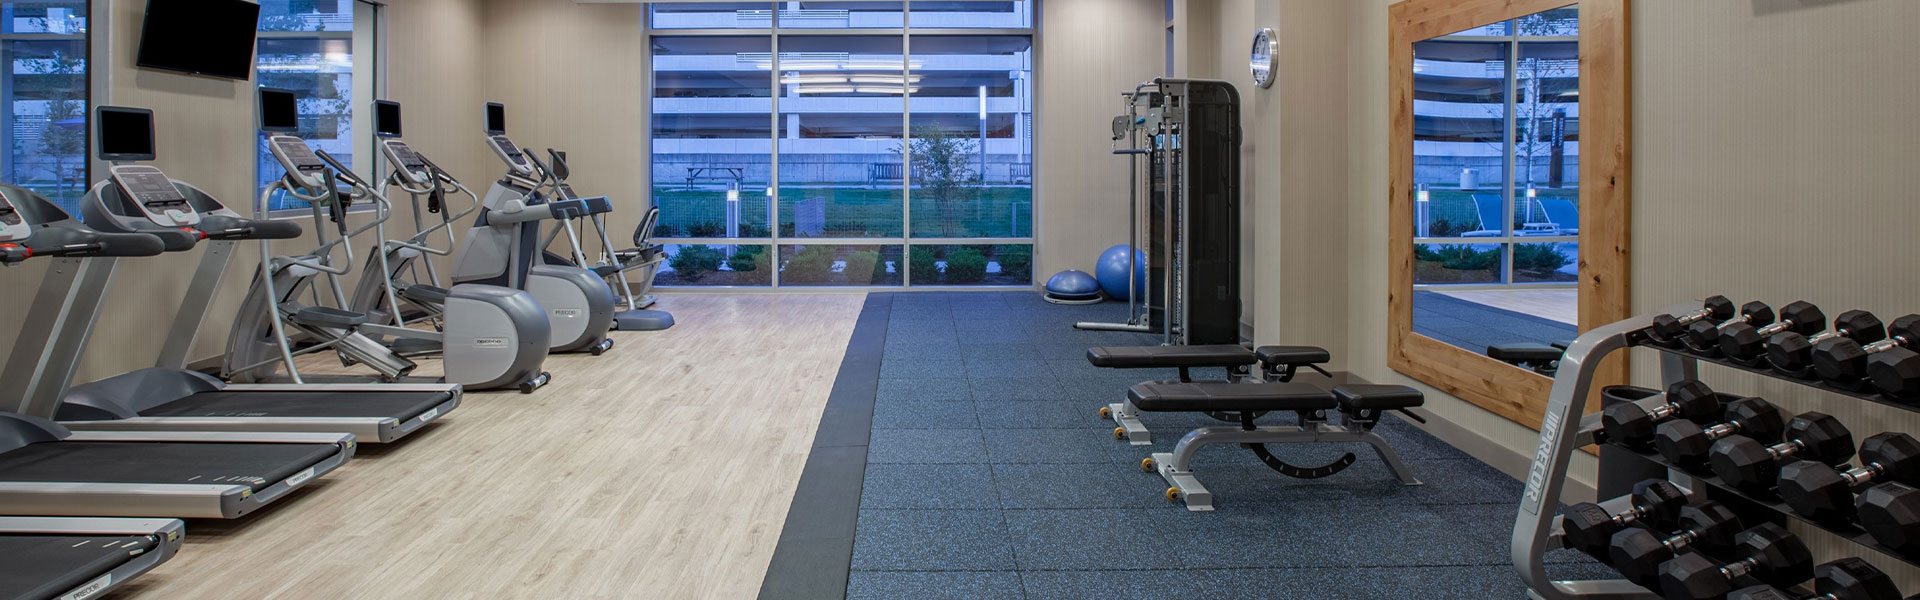 Holiday Inn Cleveland Clinic Ohio - Amenities & Services